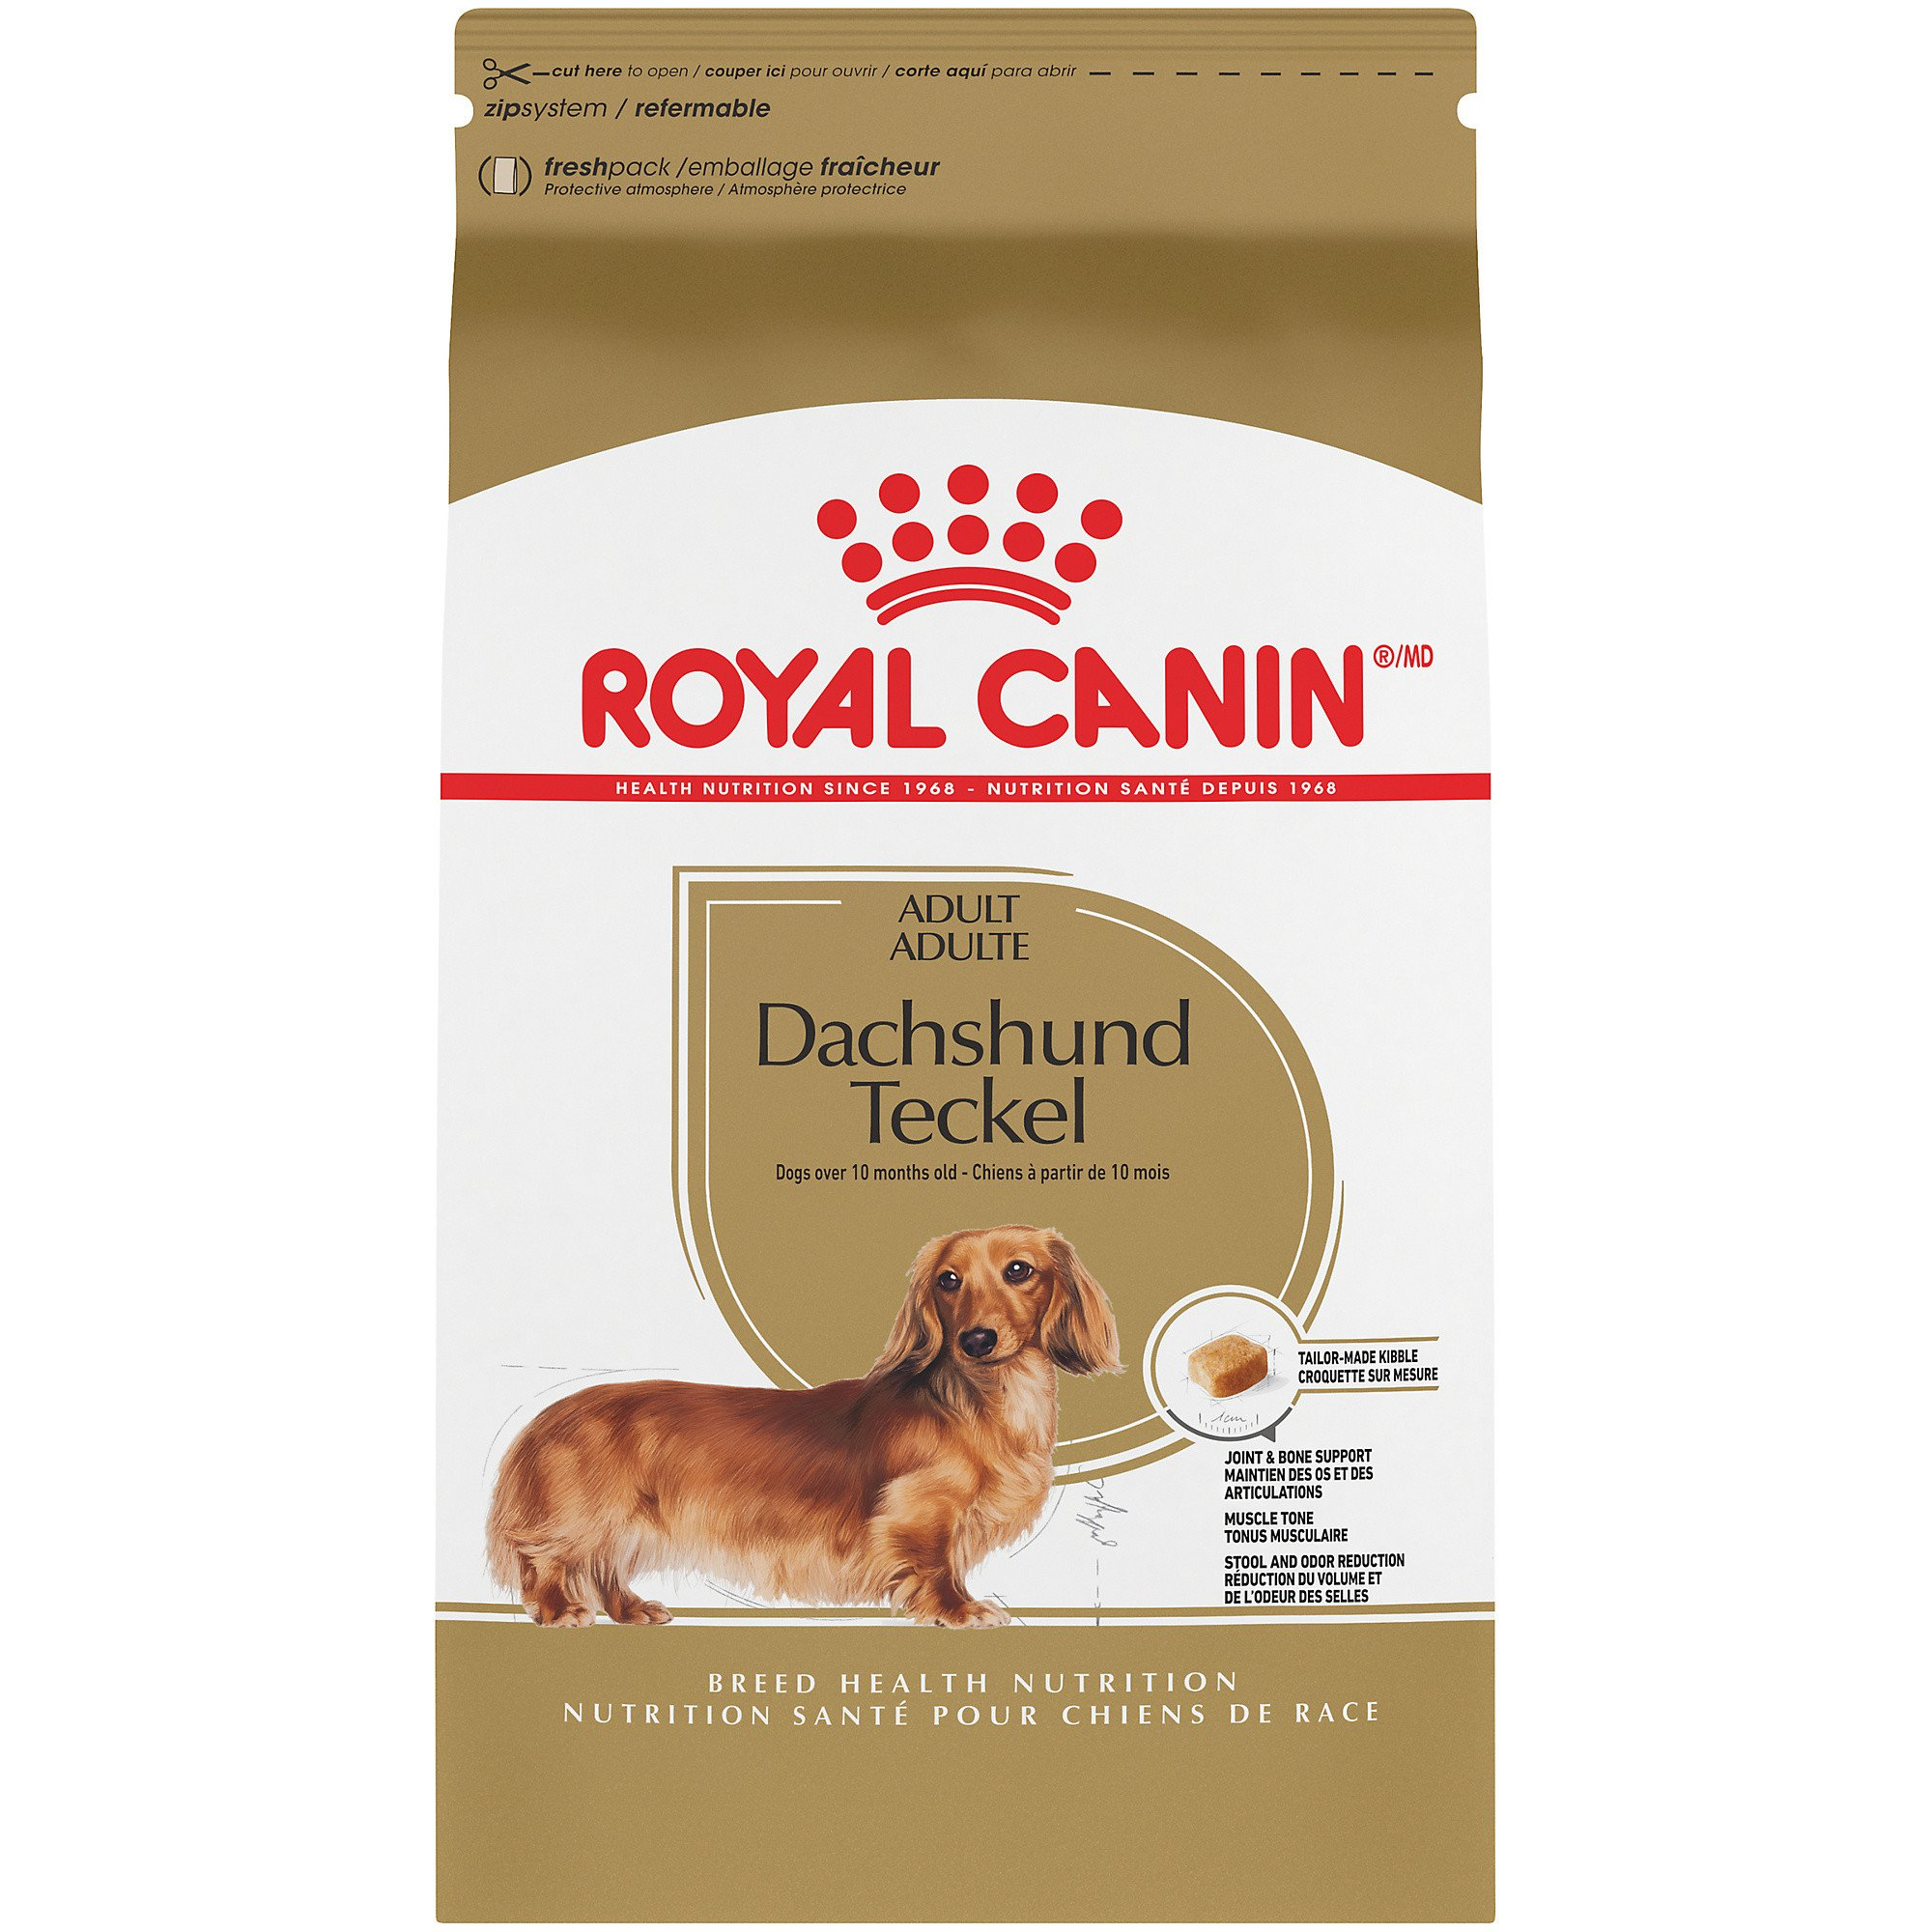 royal canin breed health nutrition dachshund adult dry dog food petco. Black Bedroom Furniture Sets. Home Design Ideas